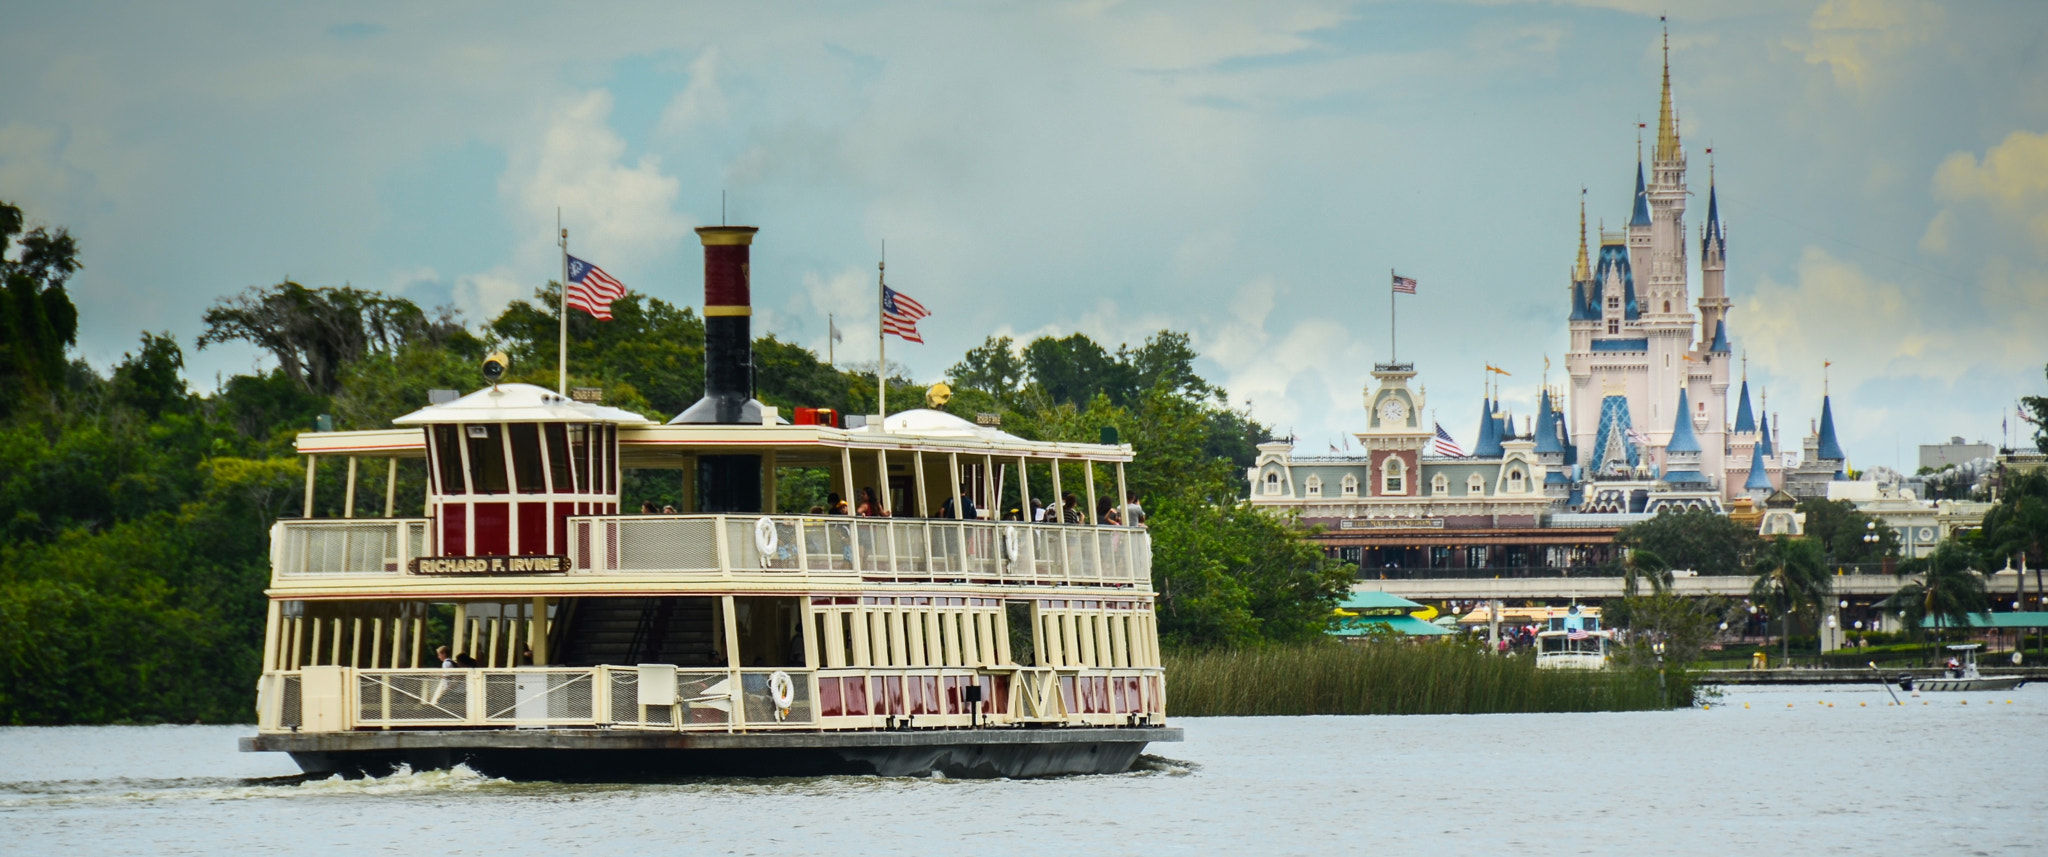 Photograph Ferry to Disney by Frank Corrado on 500px